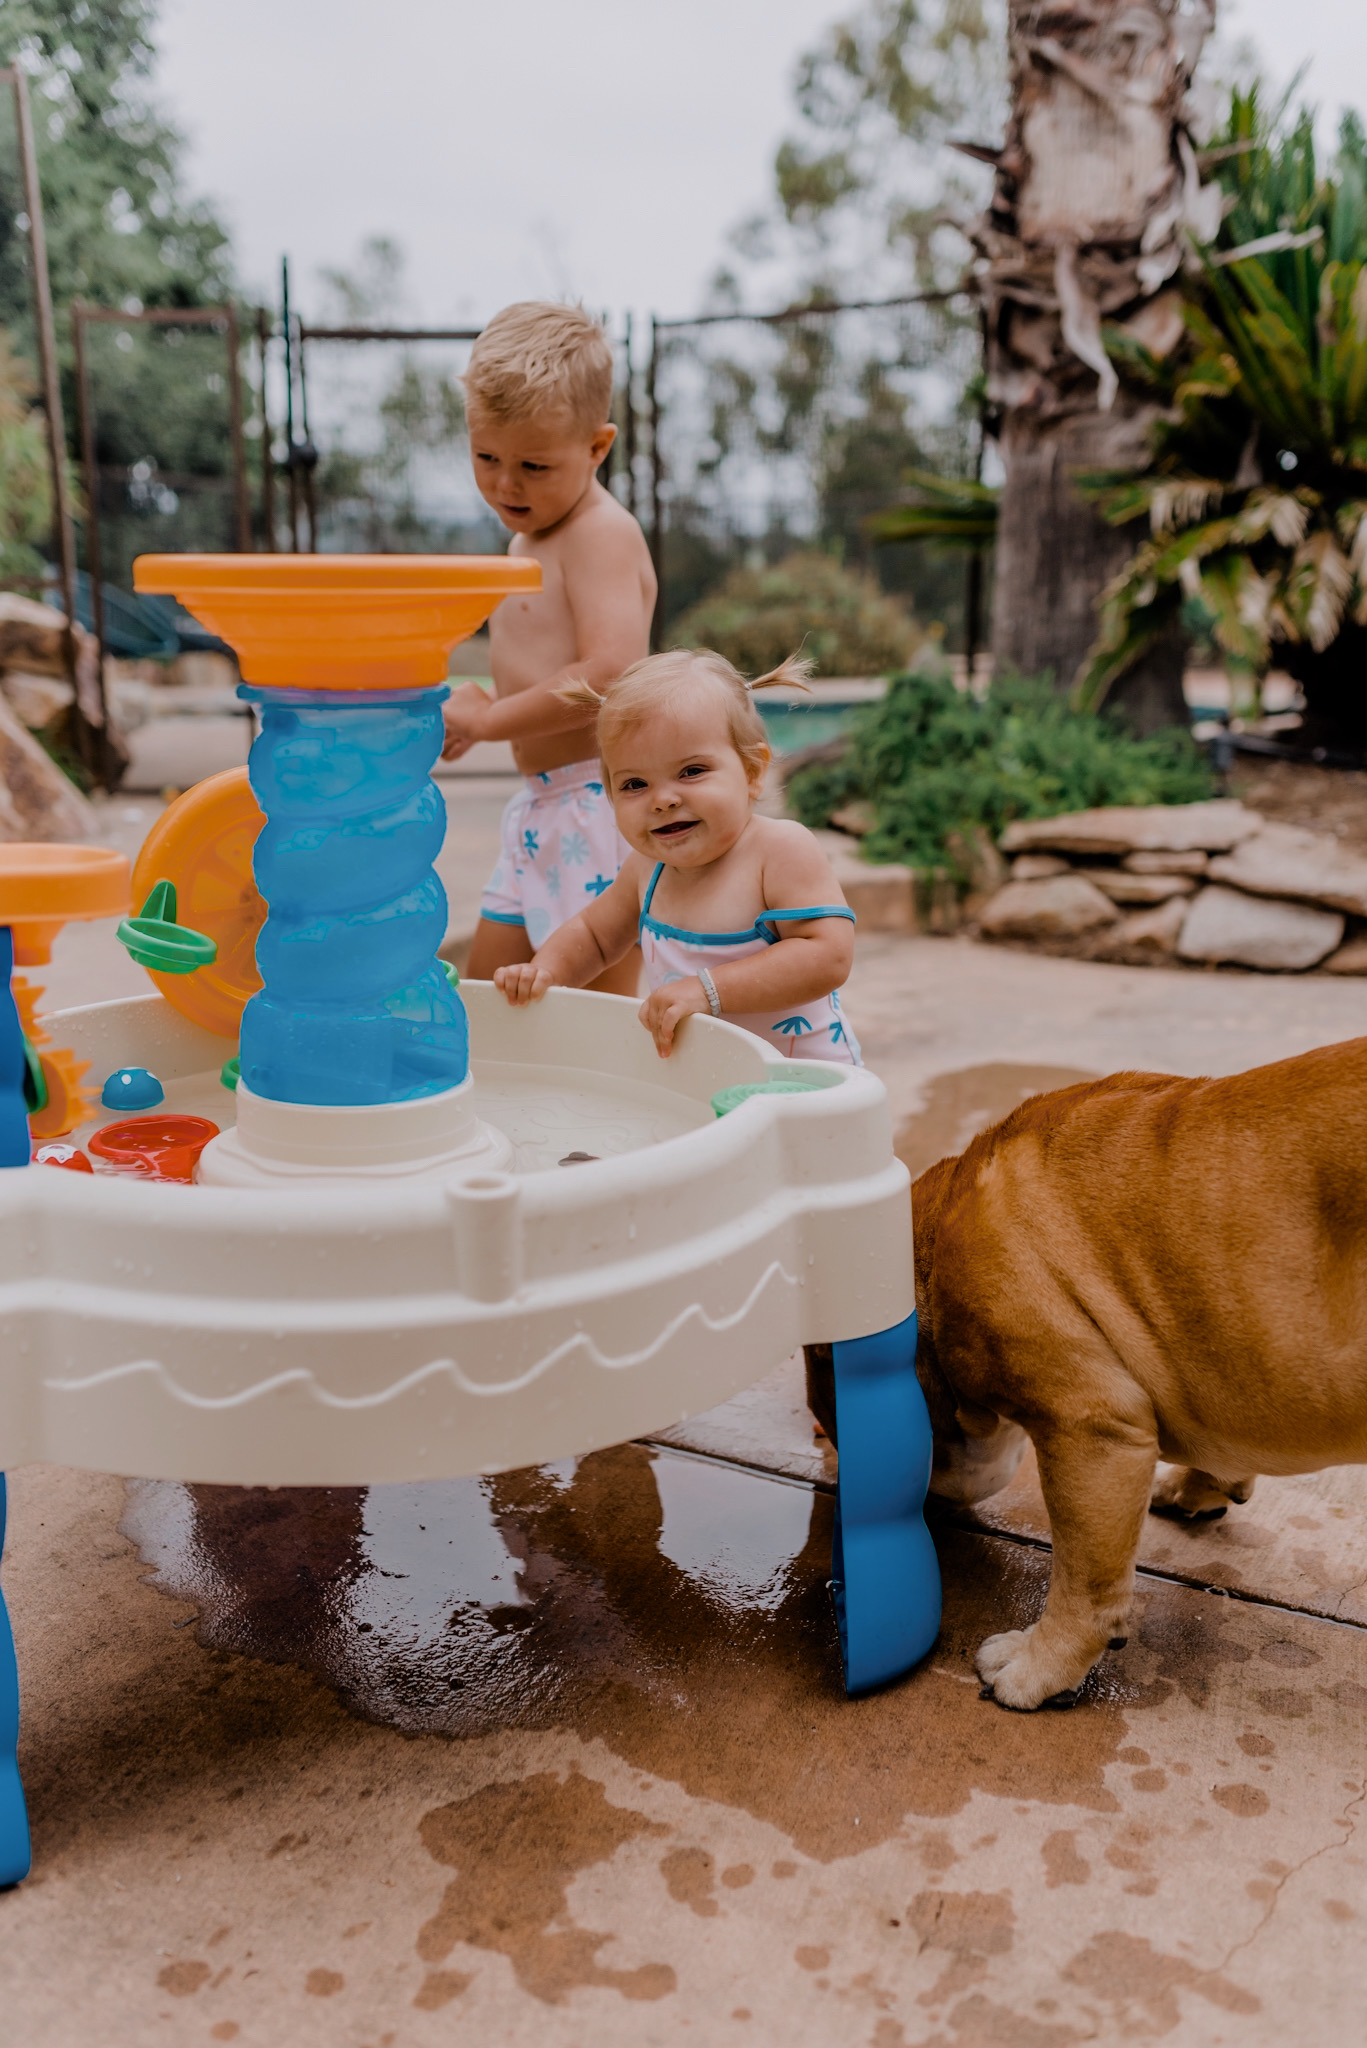 18 SUPER FUN OUTDOOR ACTIVITIES FOR YOUR FAMILY THIS SUMMER featured by top San Diego lifestyle blogger, Navy Grace | Family Outdoor Activities by popular San Diego lifestyle blog, Navy Grace: image of a young boy and baby girl playing with a water table.